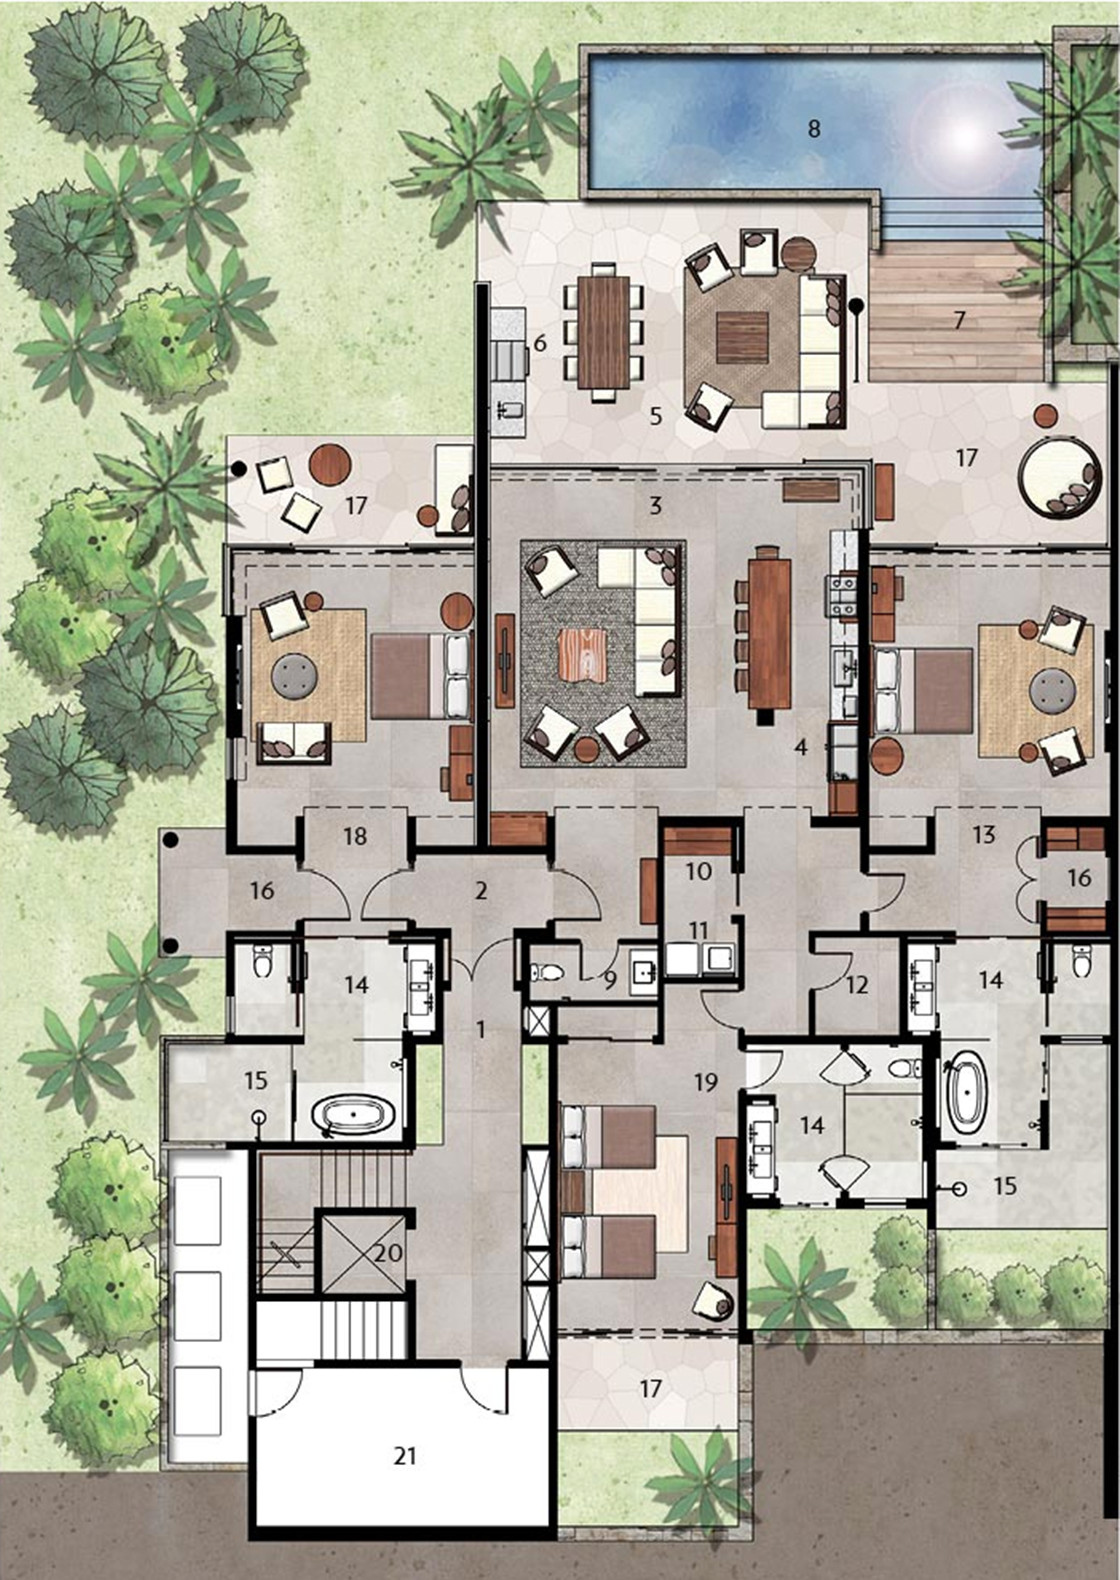 Los cabos luxury villas floor plans chileno bay resort 3 bedroom villa floor plans